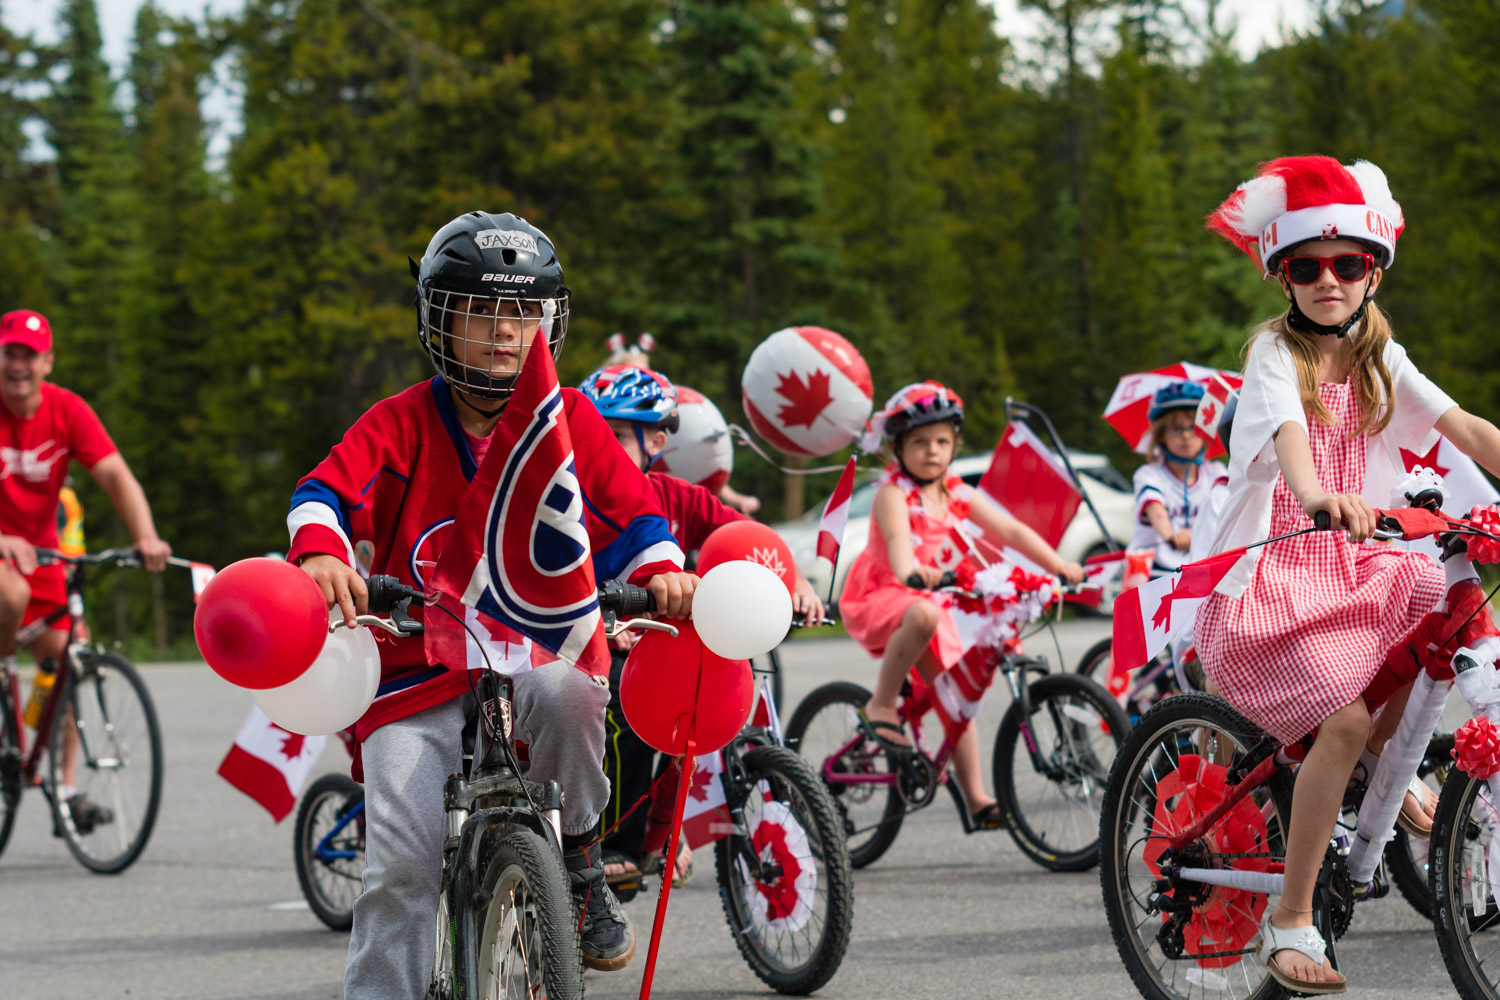 A small parade for Canada day.